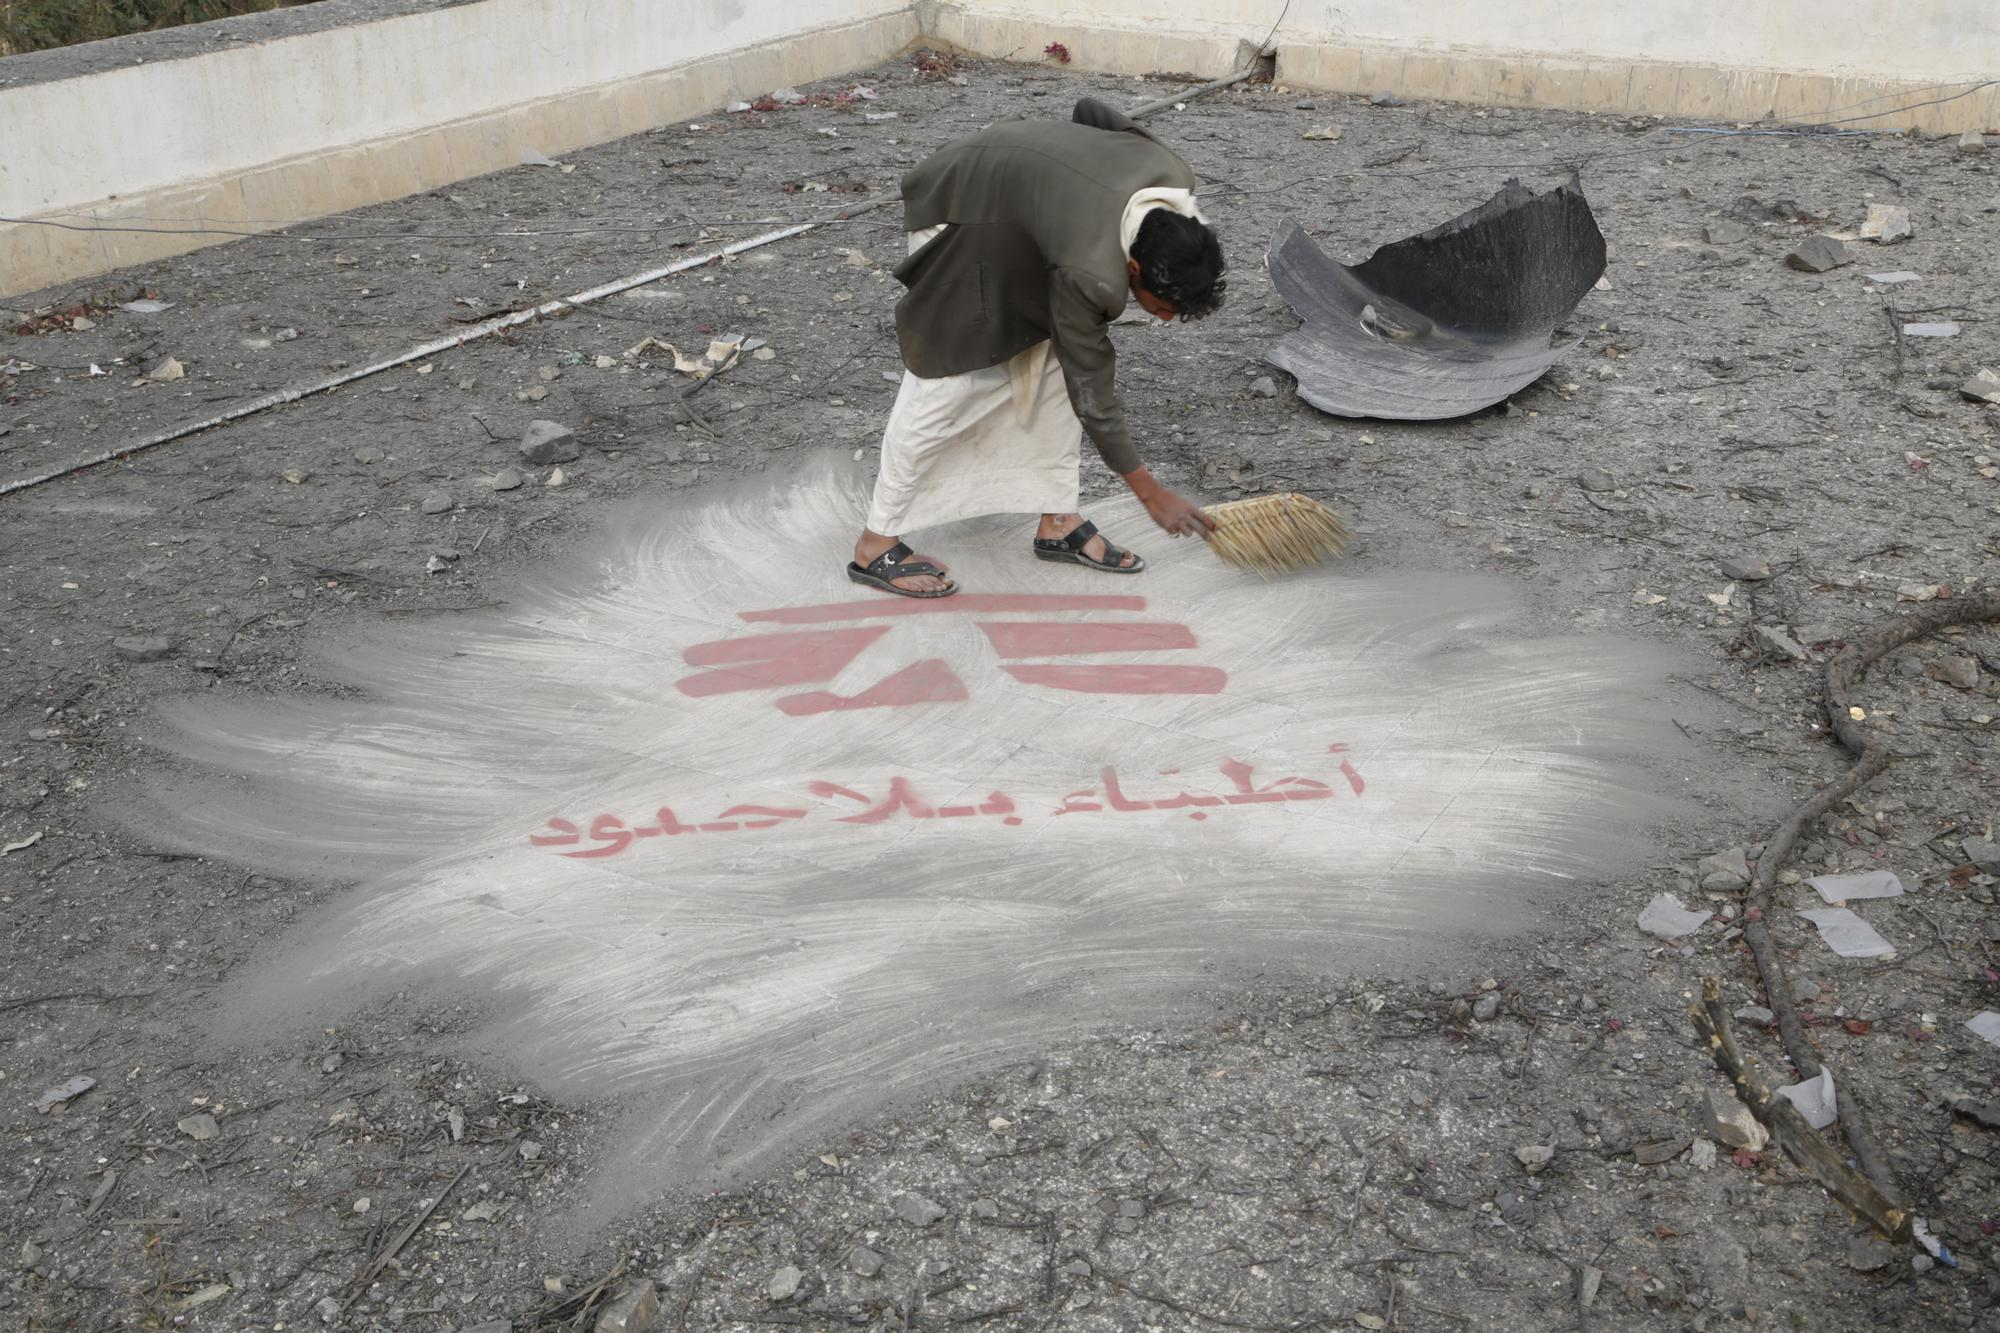 A man sweeping away dirt from an MSF logo at his feet.